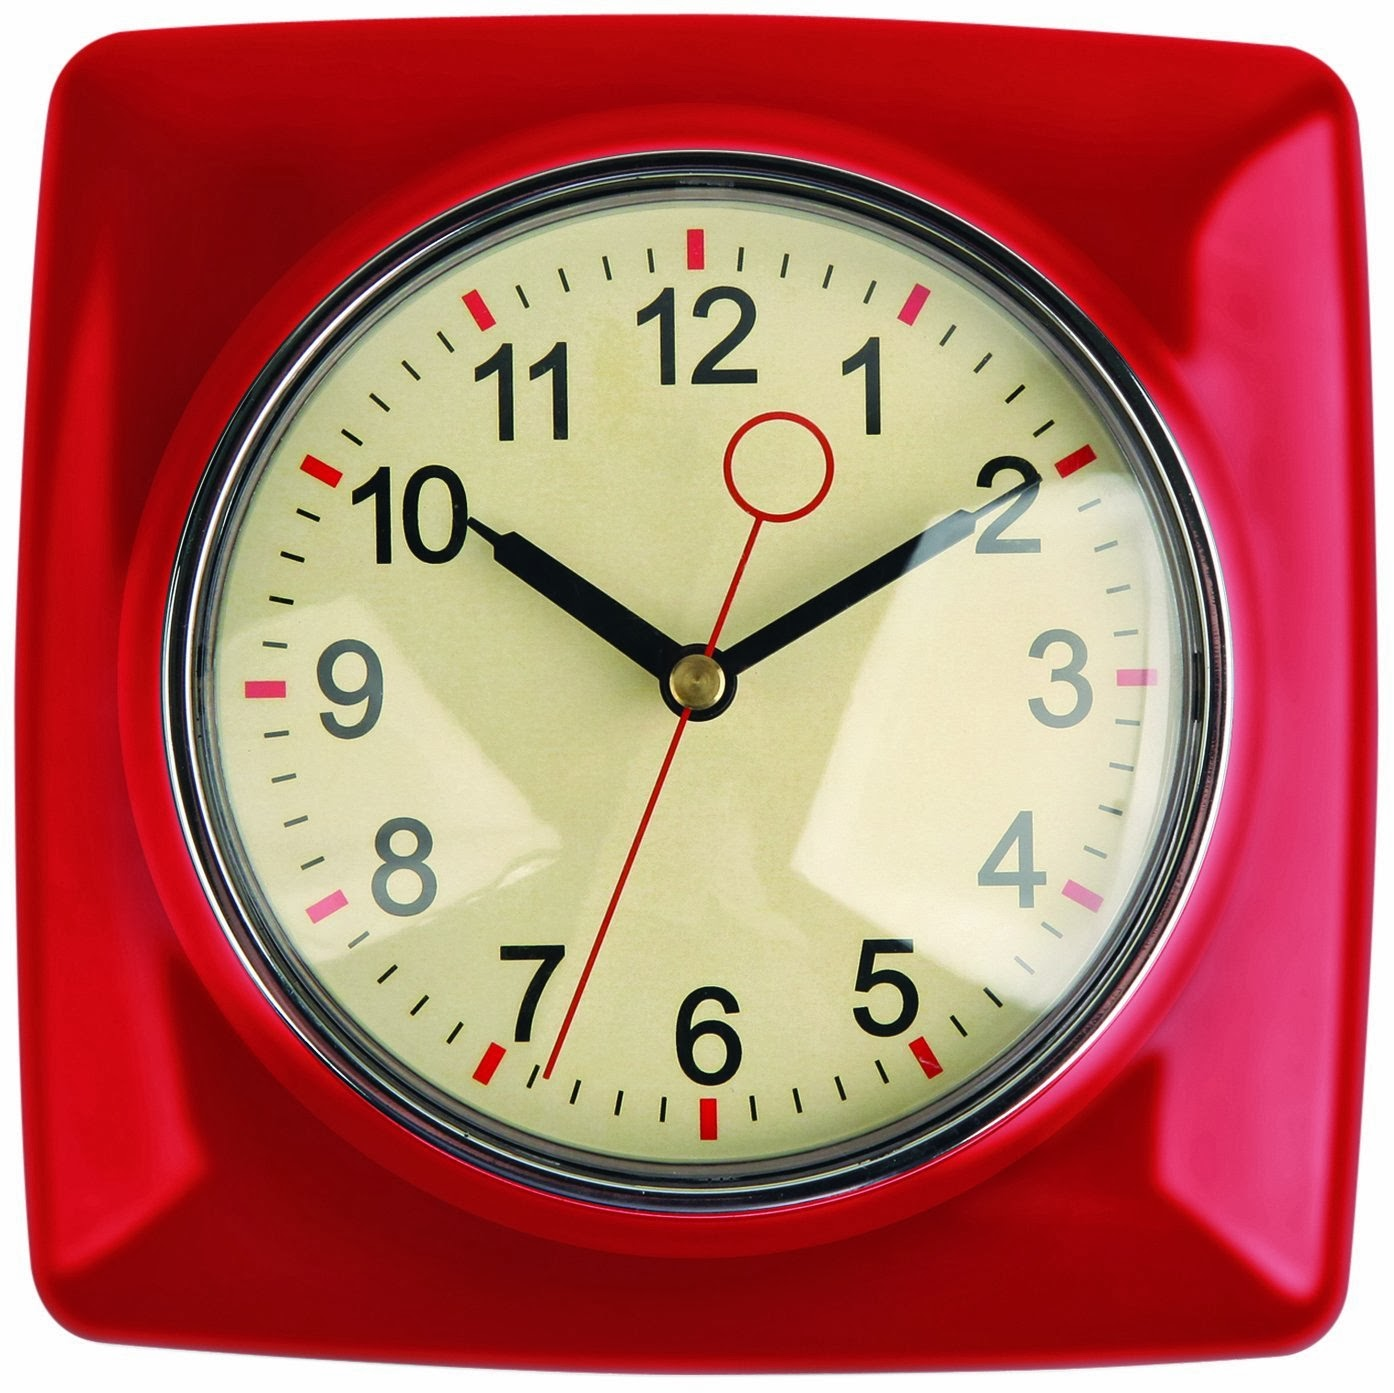 Kikkerland Retro Kitchen Wall Clock Red